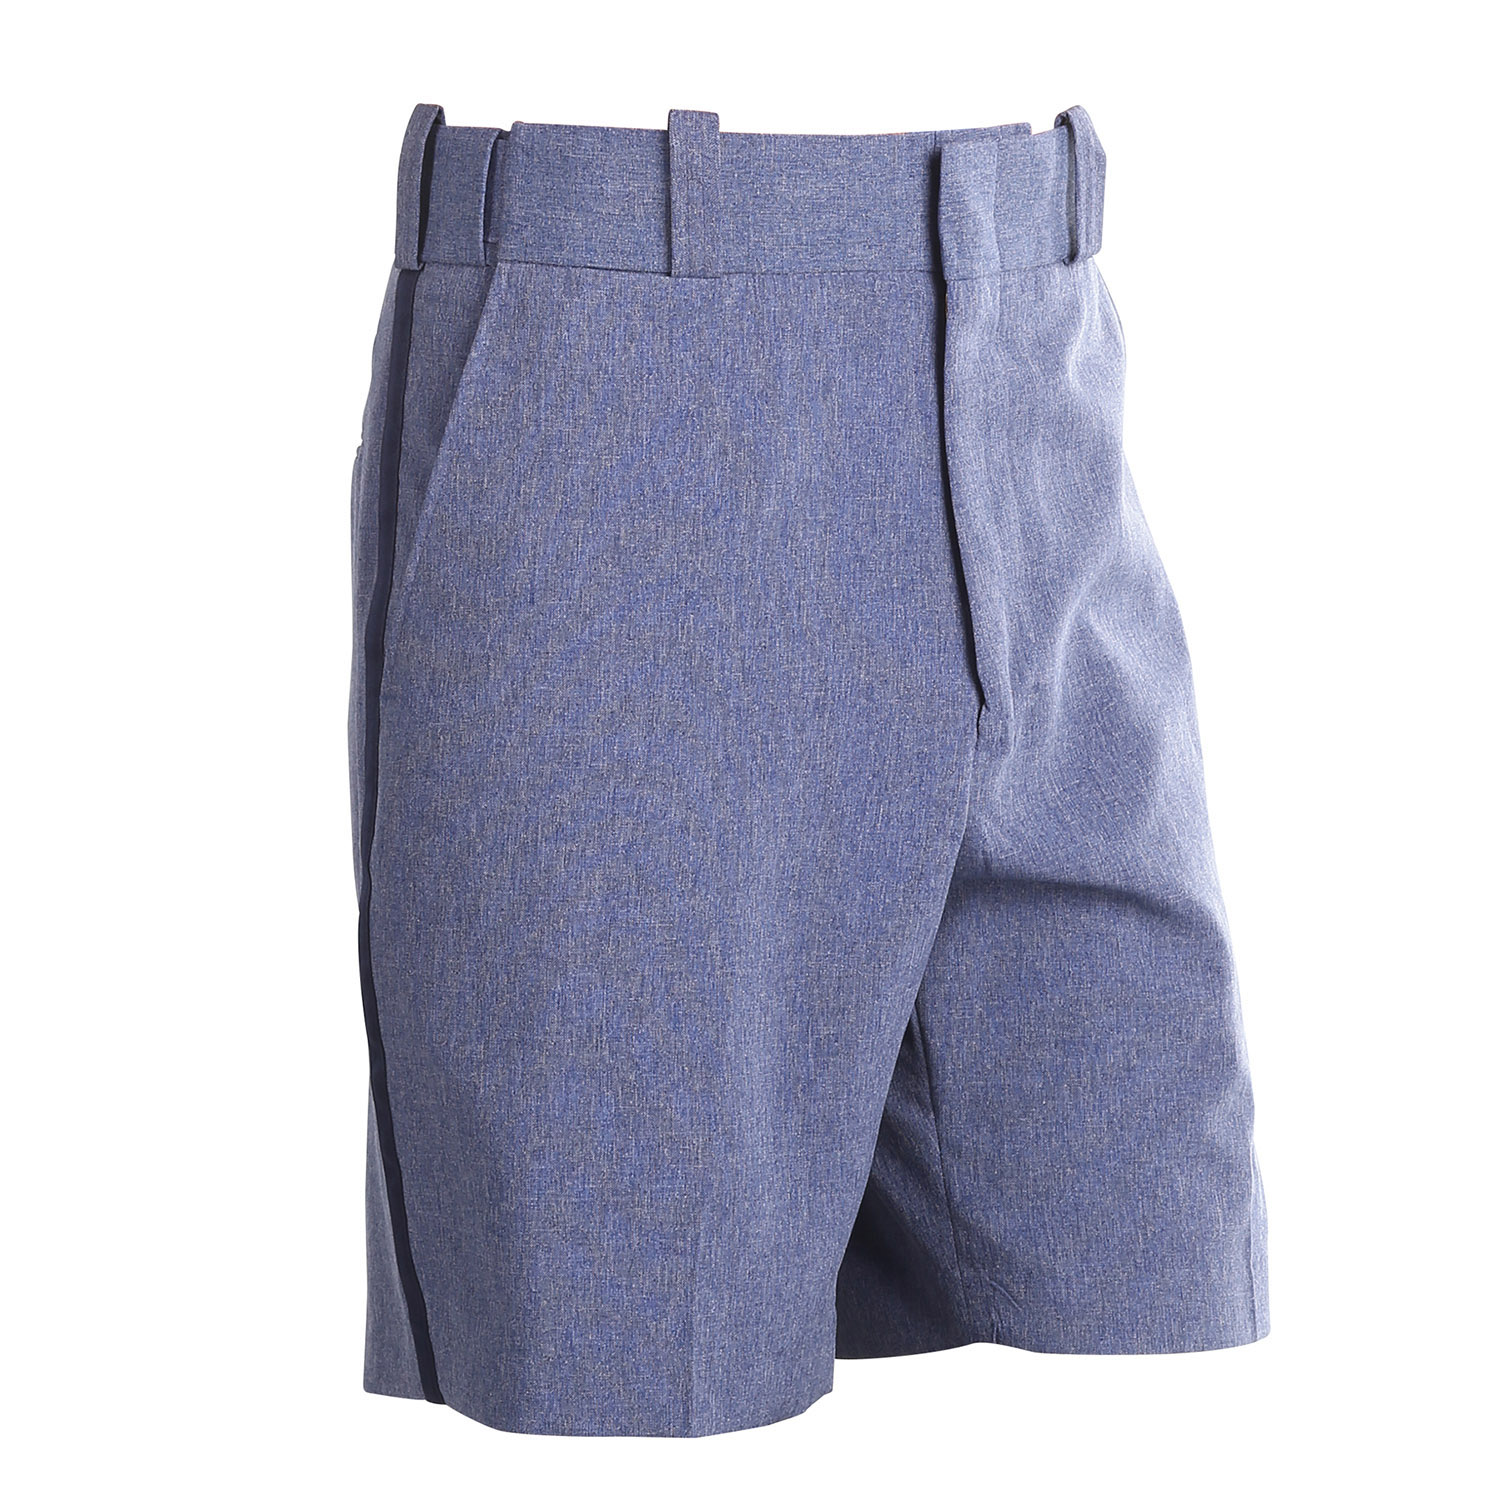 Flex Waist Postal Shorts For Carriers And Mvs Px265